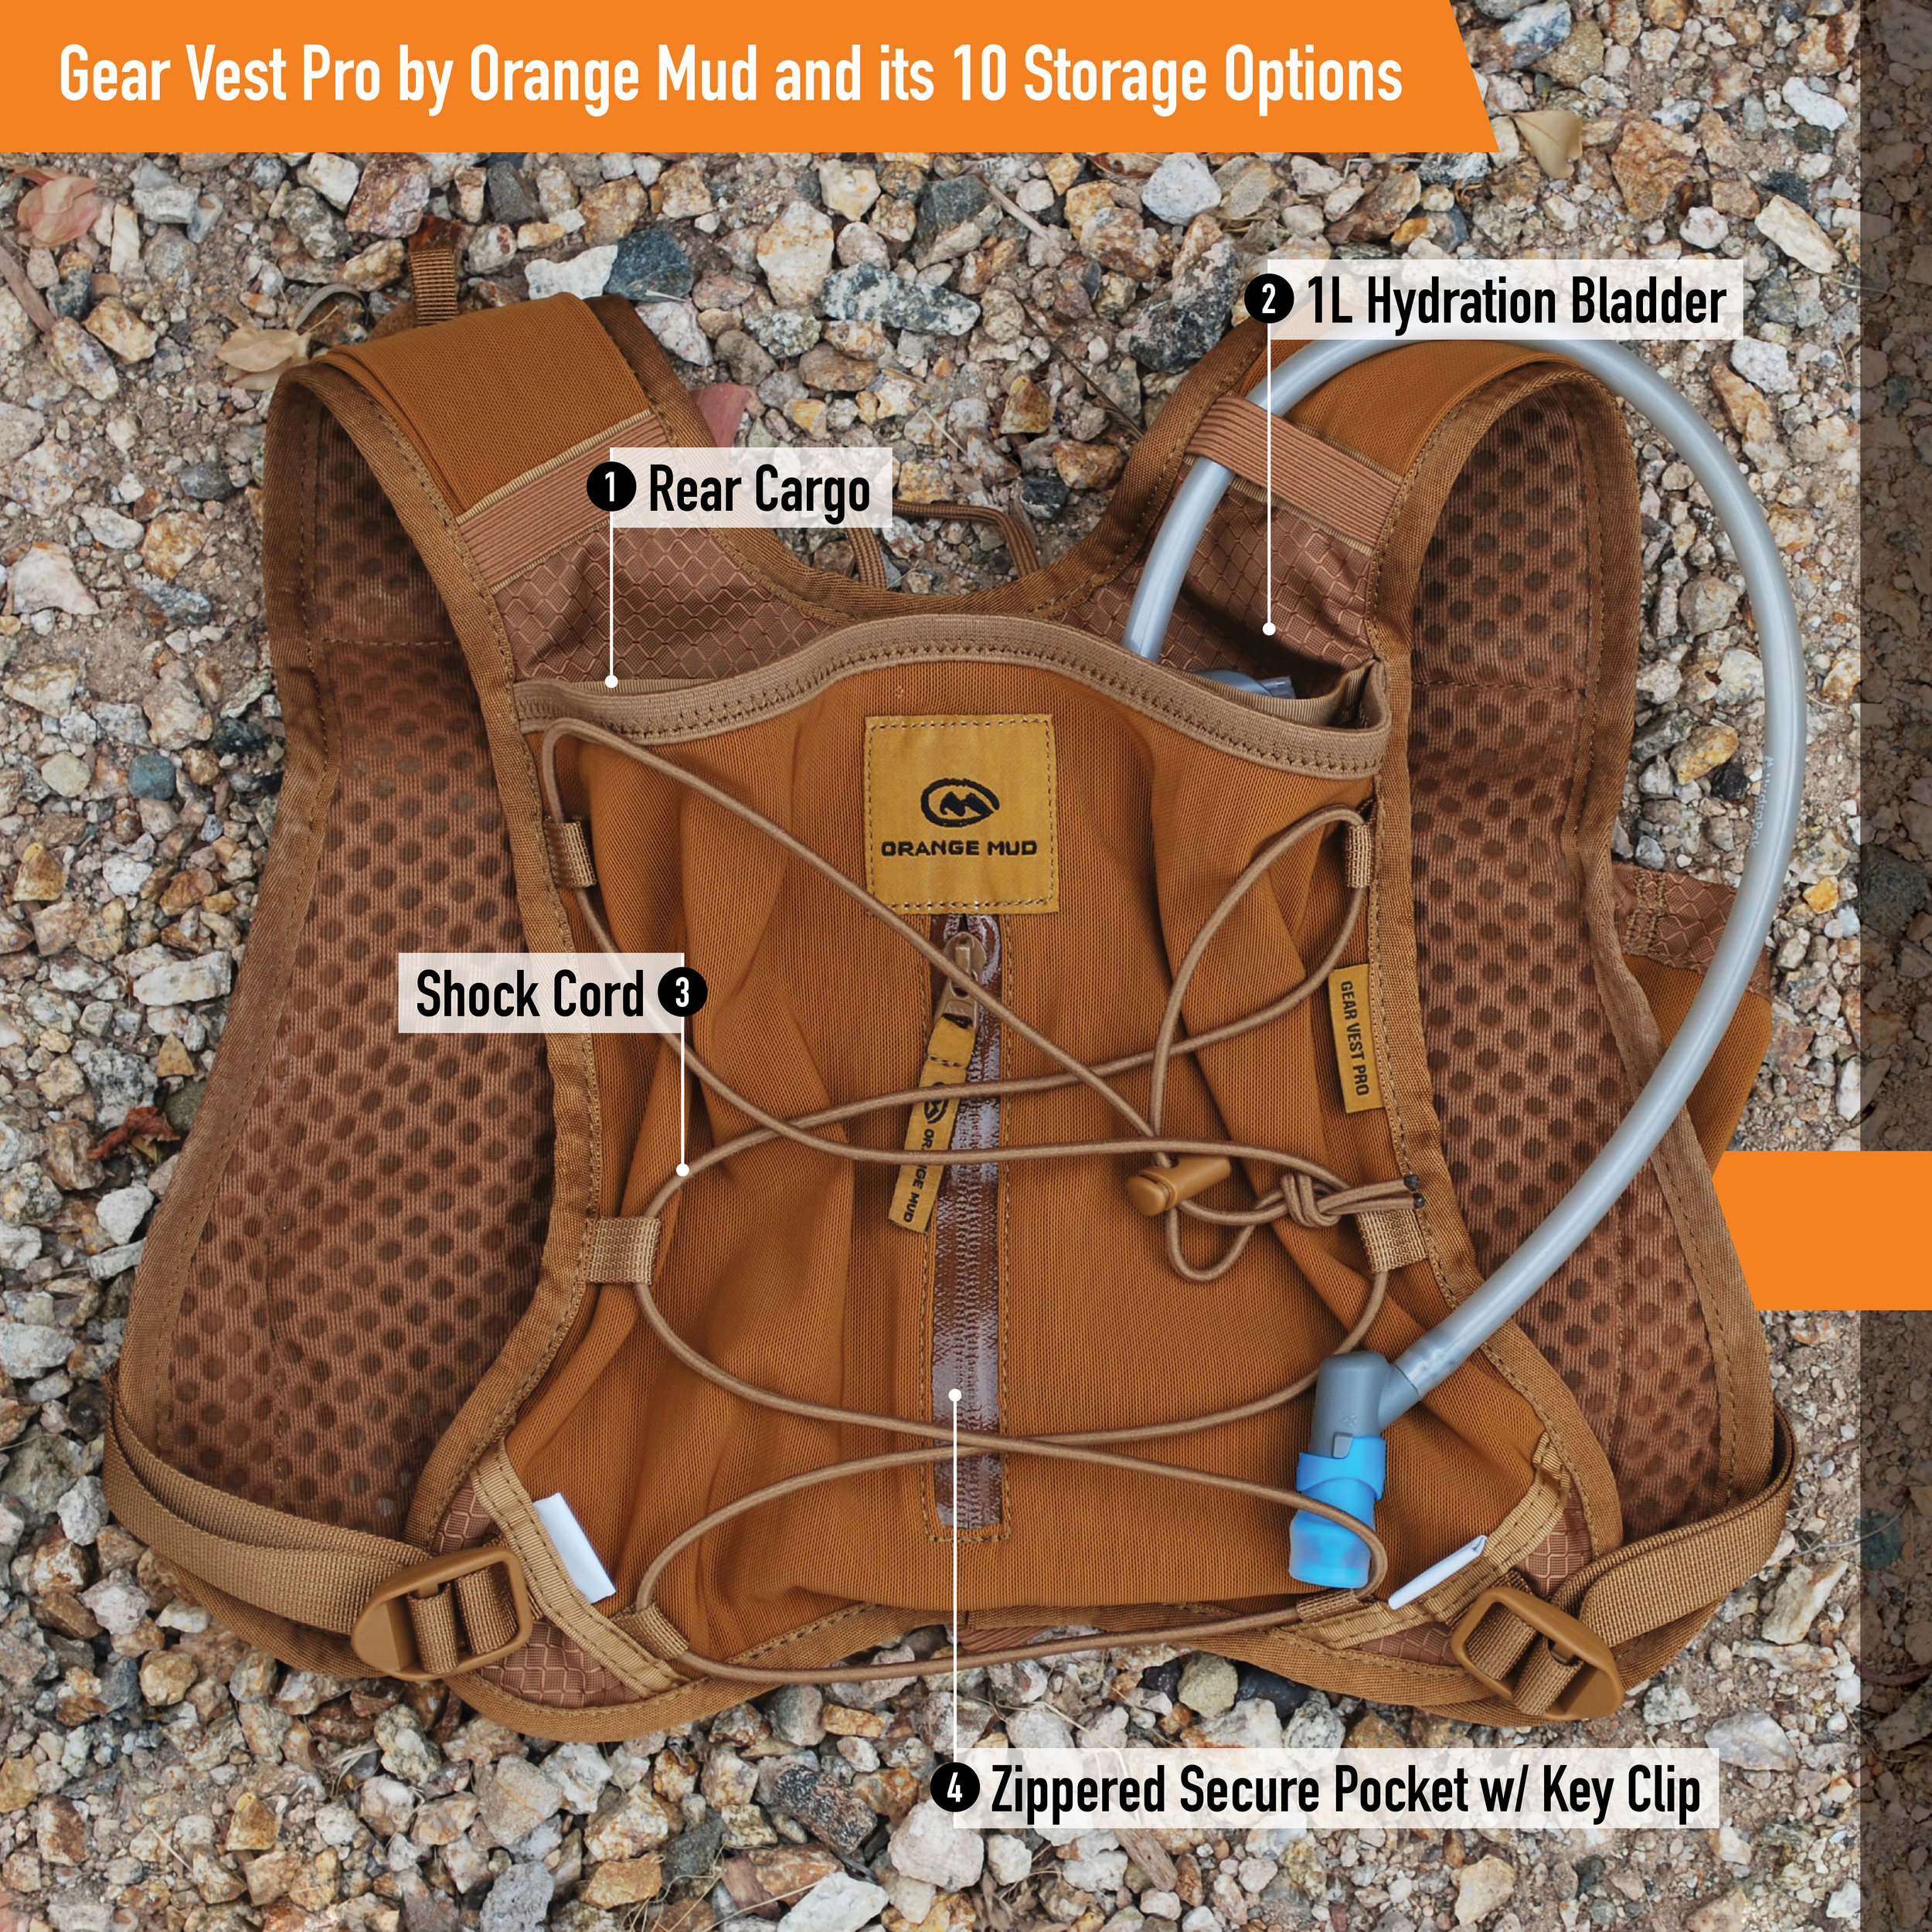 4121e2a5 I explain what all of those pockets are for on the Gear Vest Pro by Orange